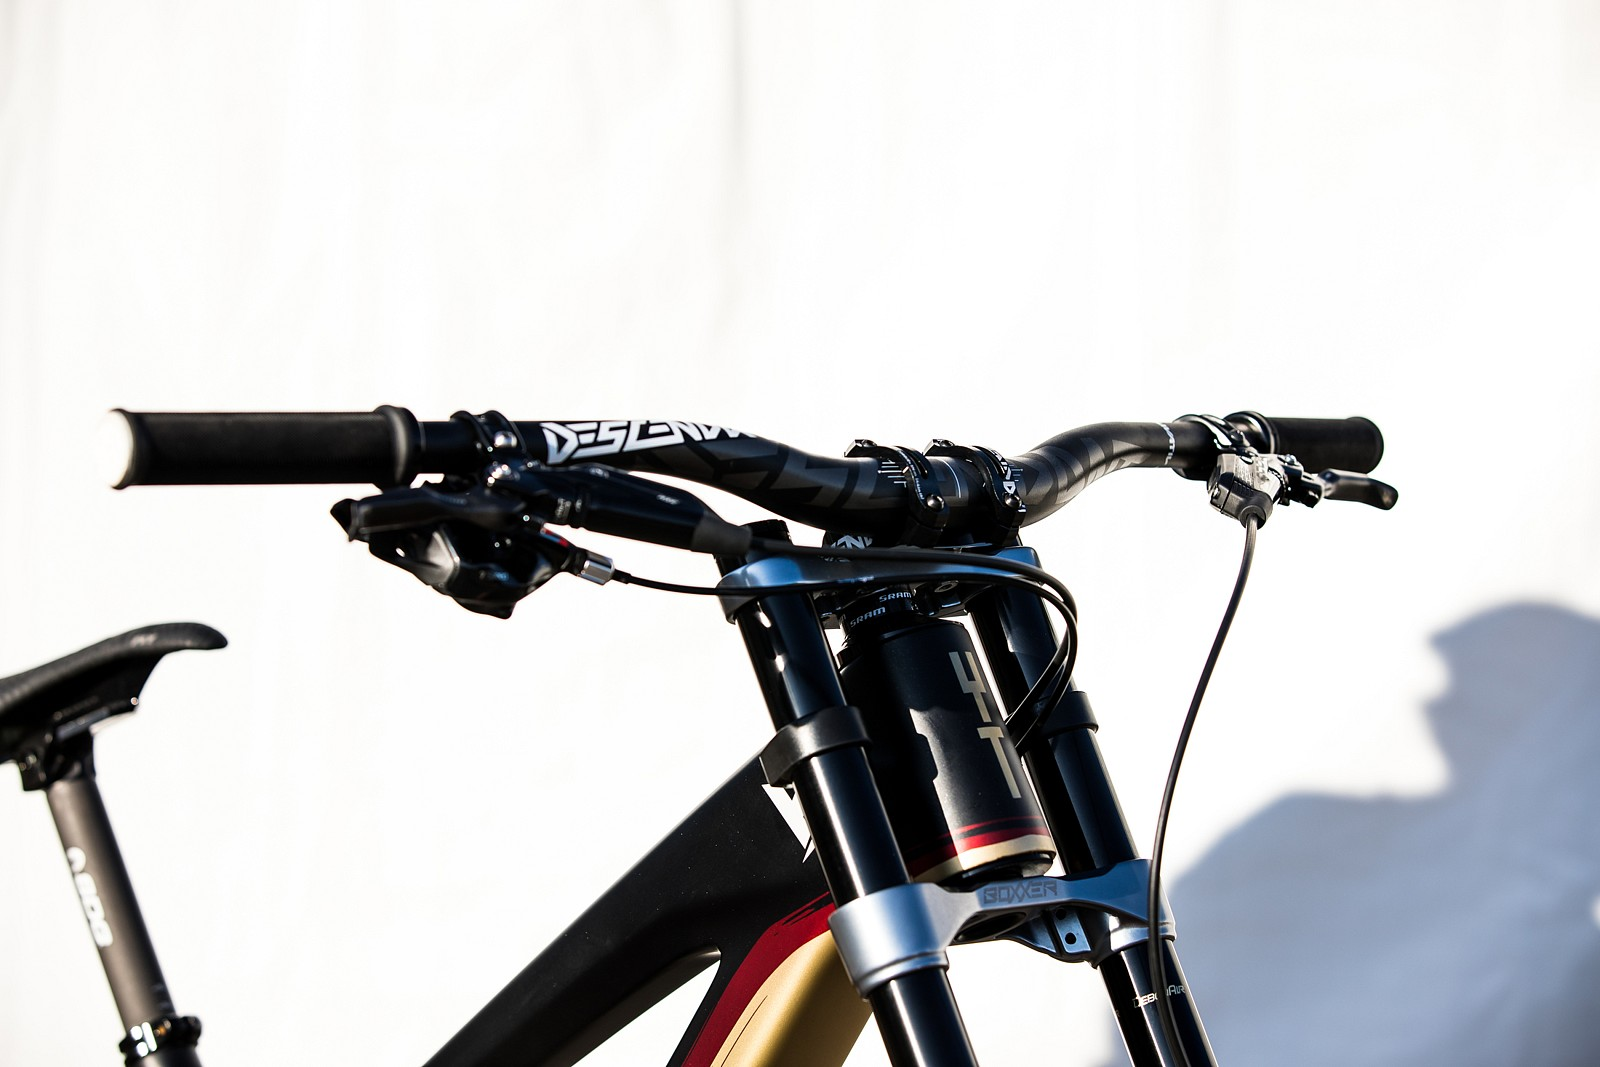 MSA19 BB020049 - Erik Irmisch's YT TUES at 2019 Worlds MSA - Mountain Biking Pictures - Vital MTB